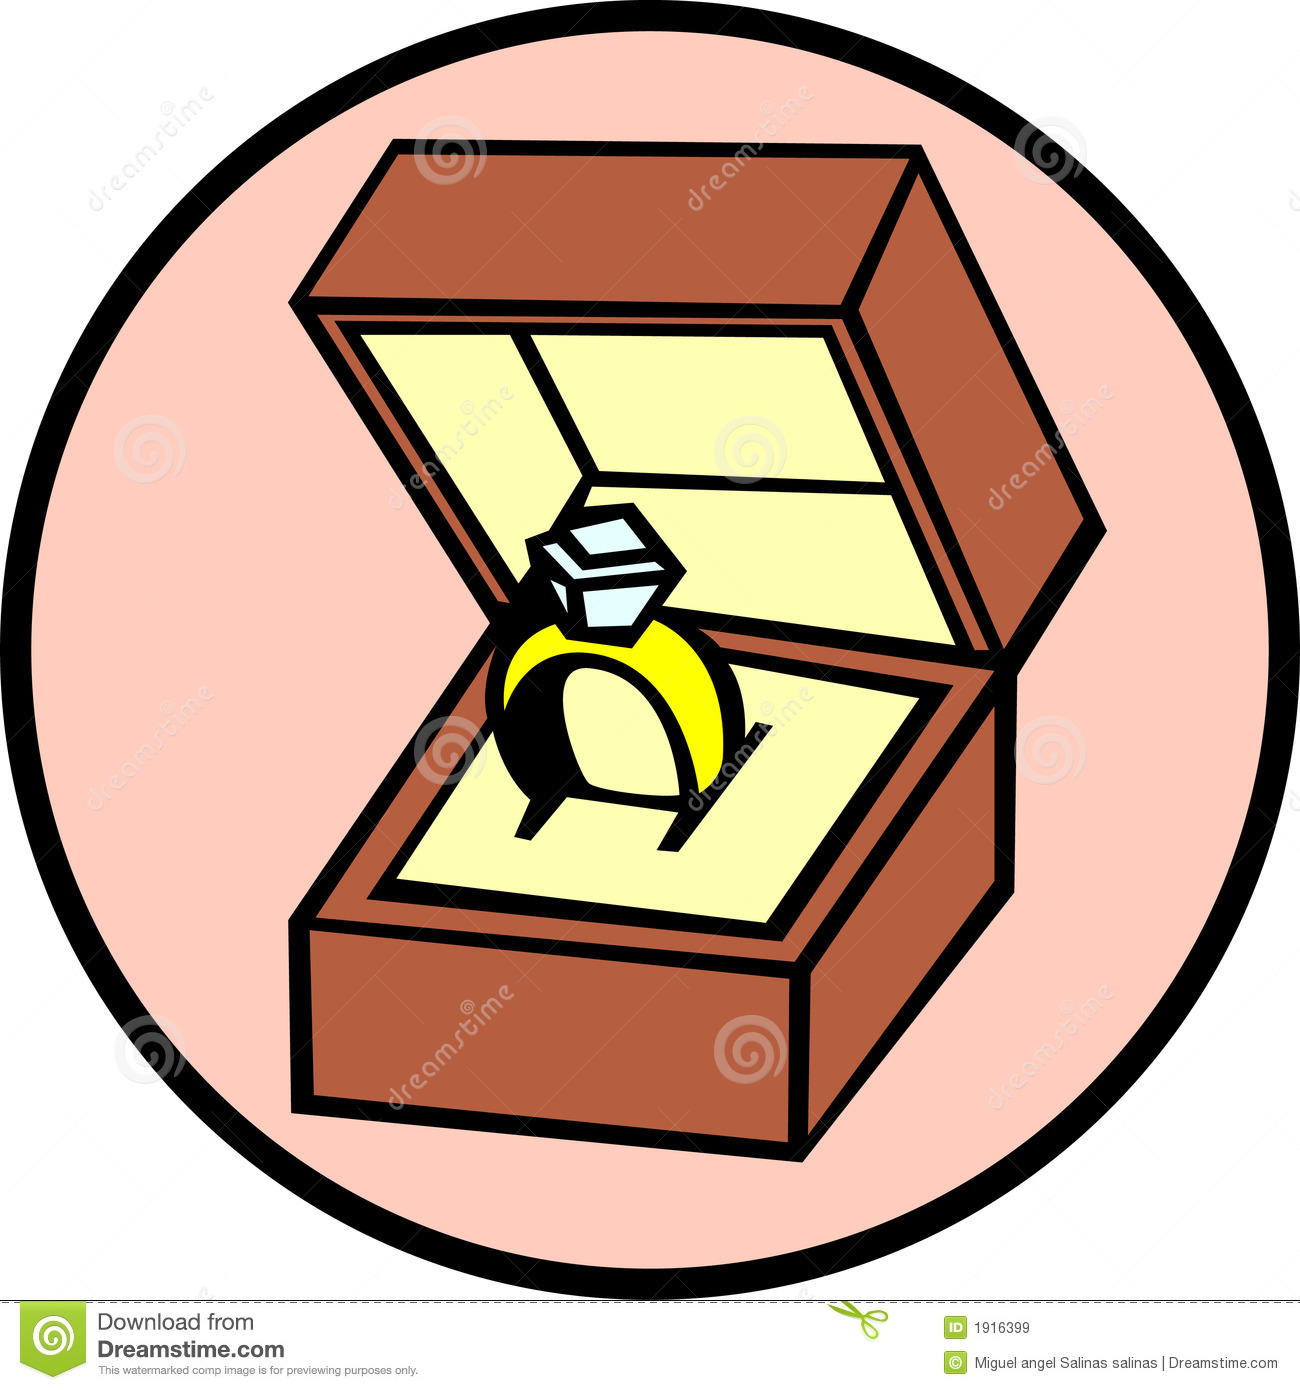 Ring clipart tiffany engagement ring Clipart Tiffany Tiffany Engagement Ring